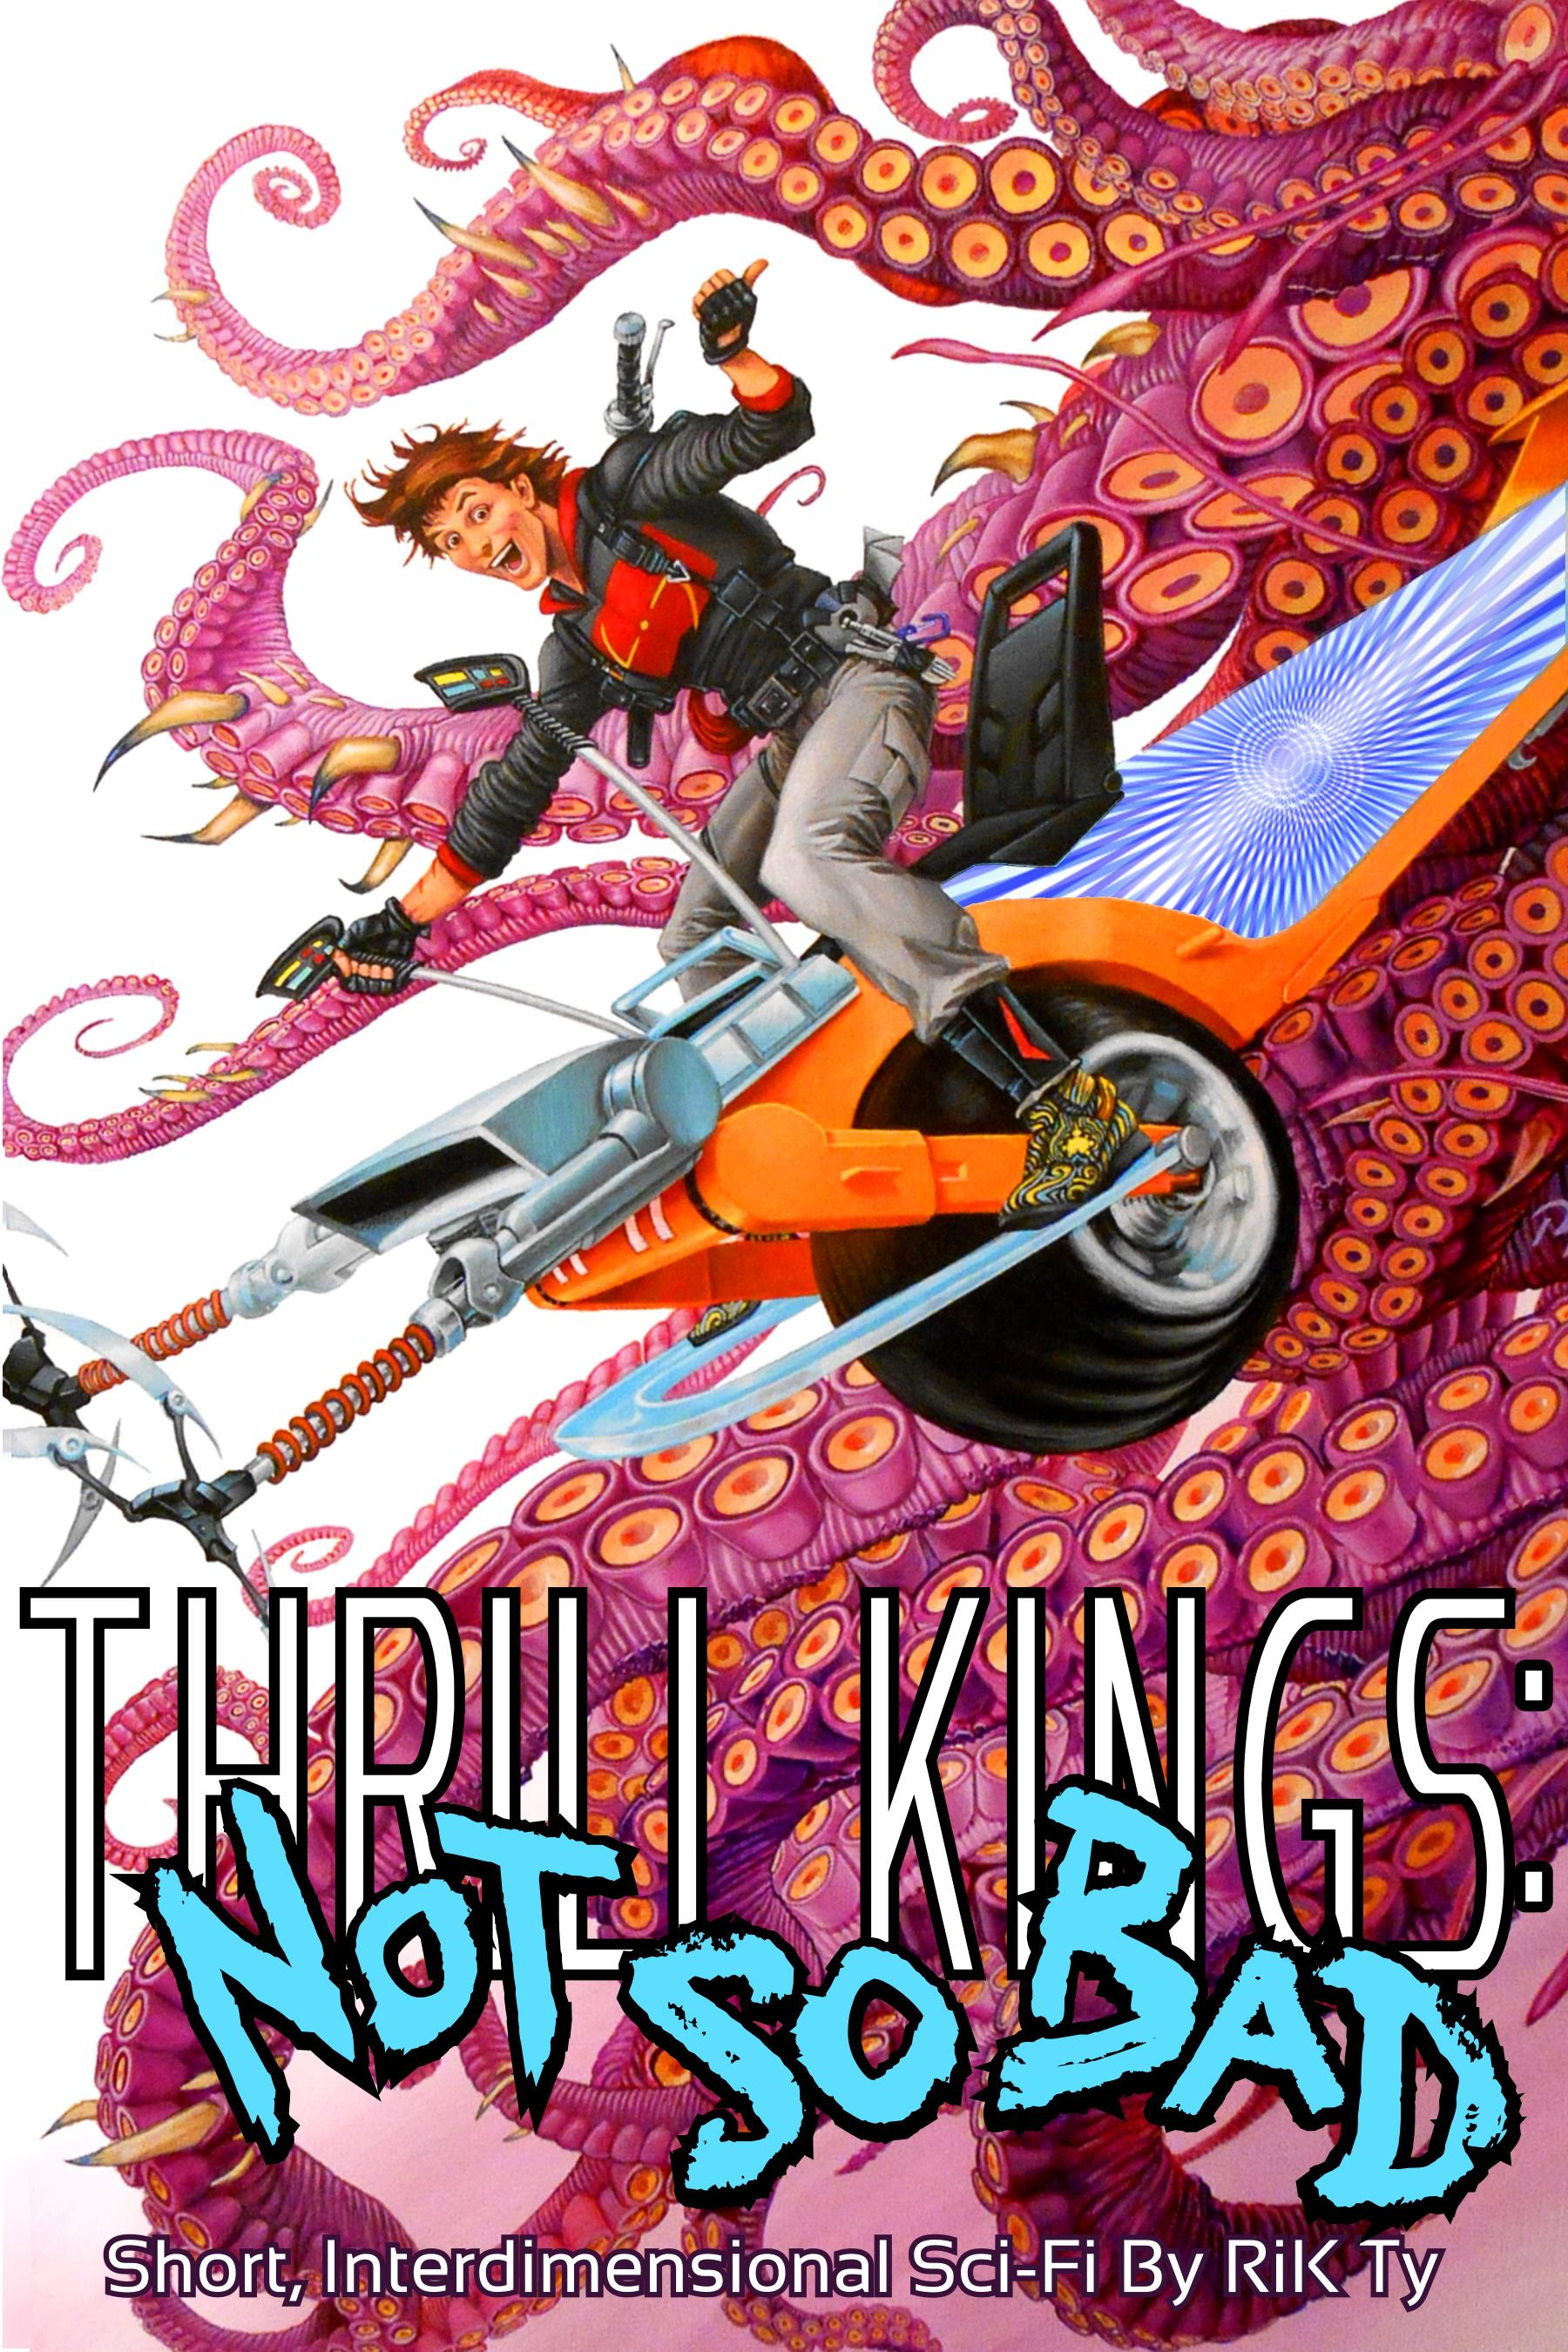 Author feature. Thrill Kings: Not so Bad by Rik Ty